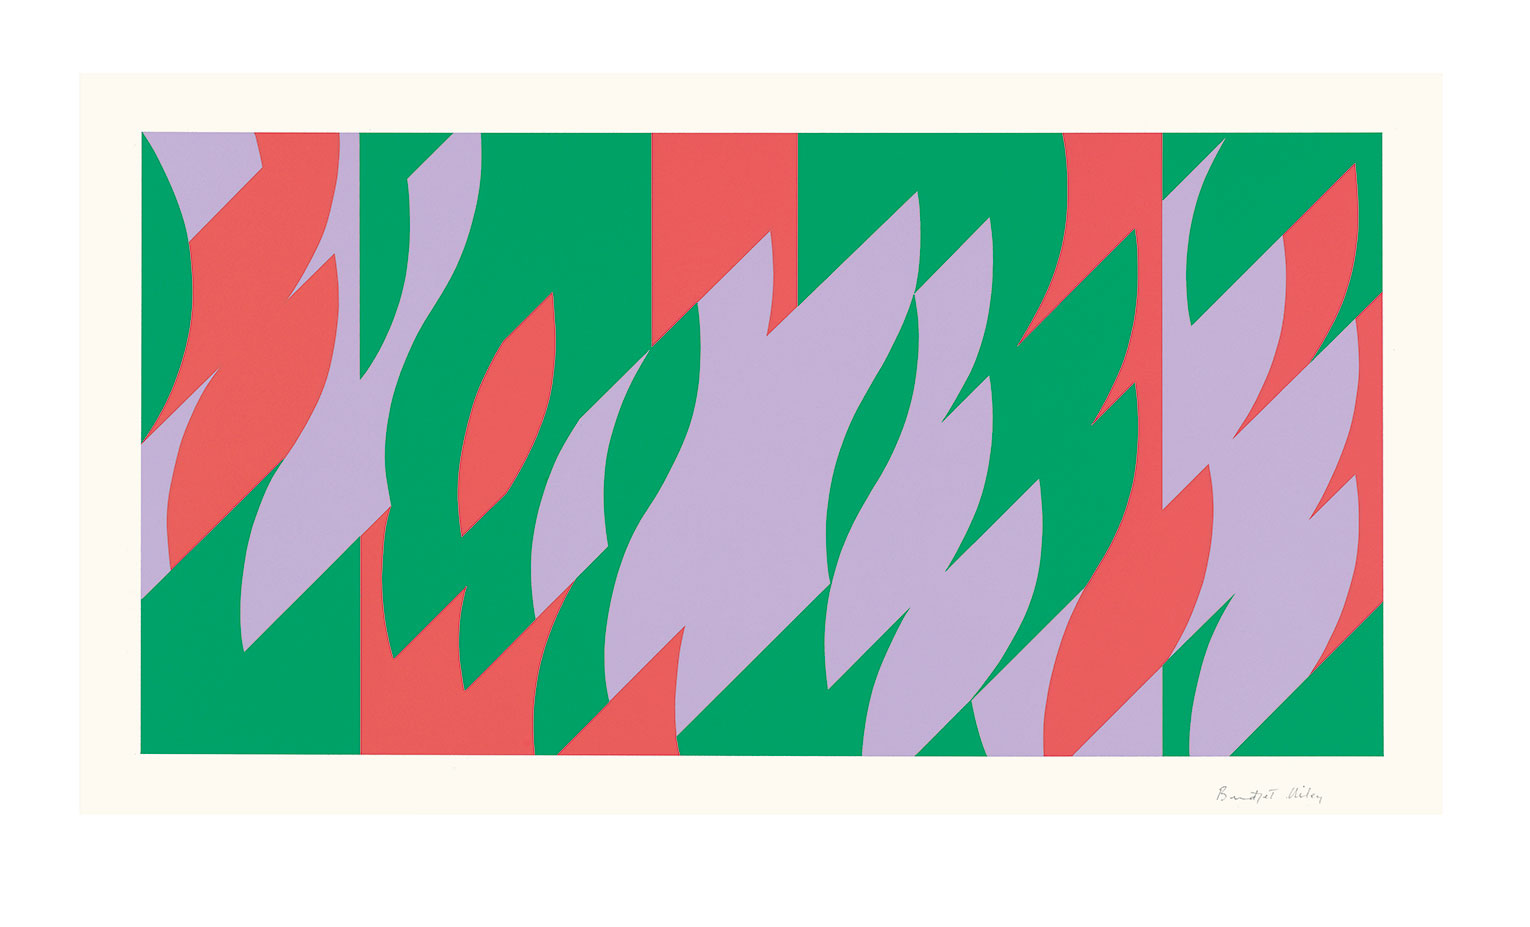 <b>Title:&nbsp;</b>About Lilac<br /><b>Year:&nbsp;</b>2007<br /><b>Medium:&nbsp;</b>Screenprint<br /><b>Size:&nbsp;</b>32.4 x 64.7 cm (image) | 48.9 x 80 cm (sheet) <br> © Bridget Riley 2016. All rights reserved, courtesy Karsten Schubert, London